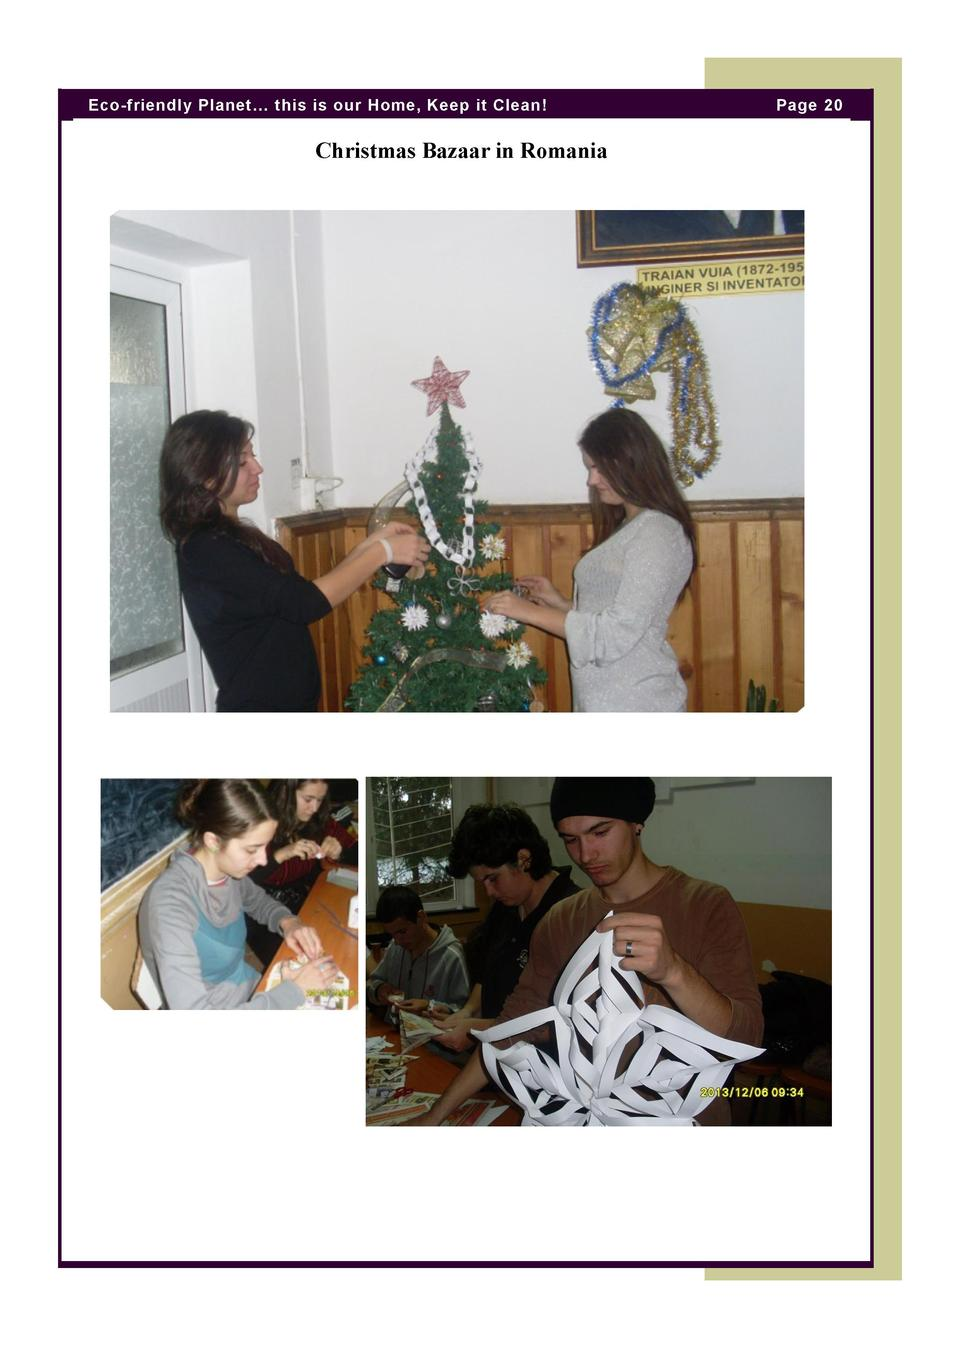 Eco-friendly Planet    this is our Home, Keep it Clean   Christmas Bazaar in Romania  Page 20